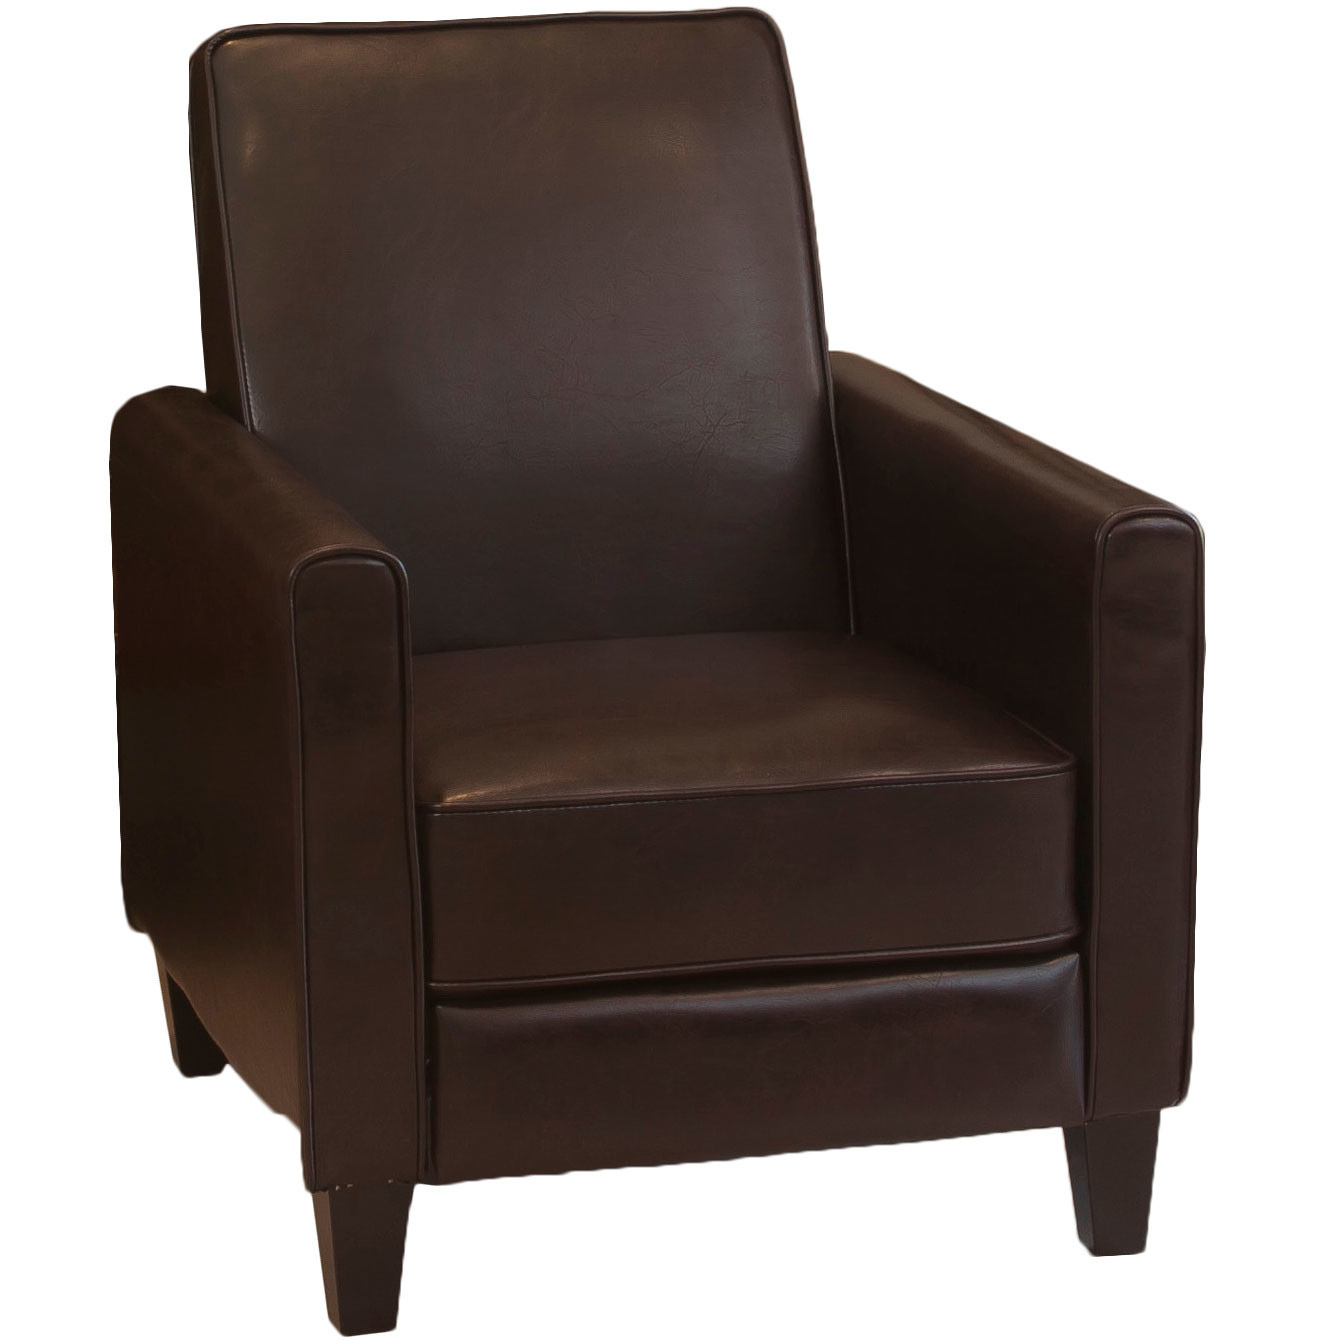 Image of: Club Chair Recliner Image